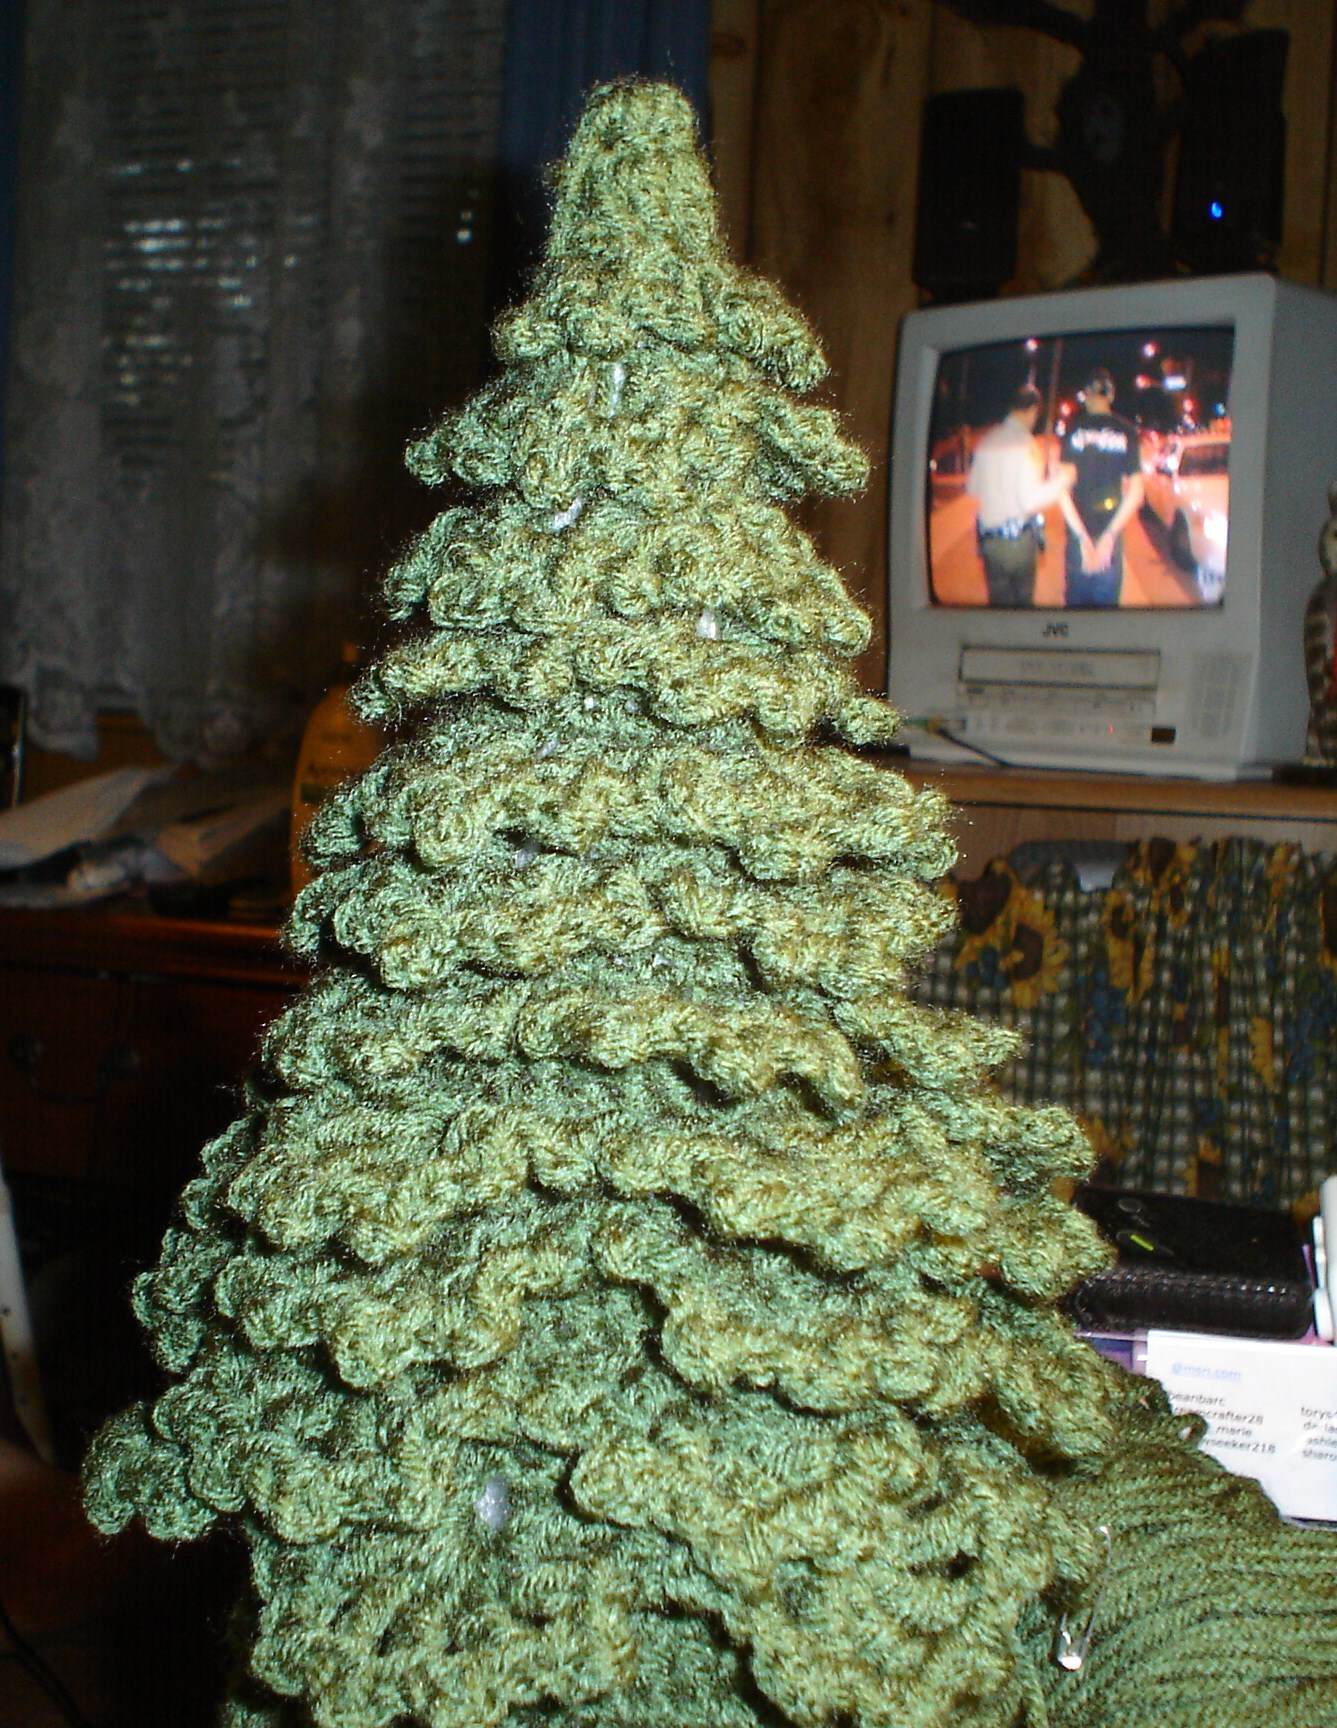 Started out making a green crocheted christmas tree with a fully